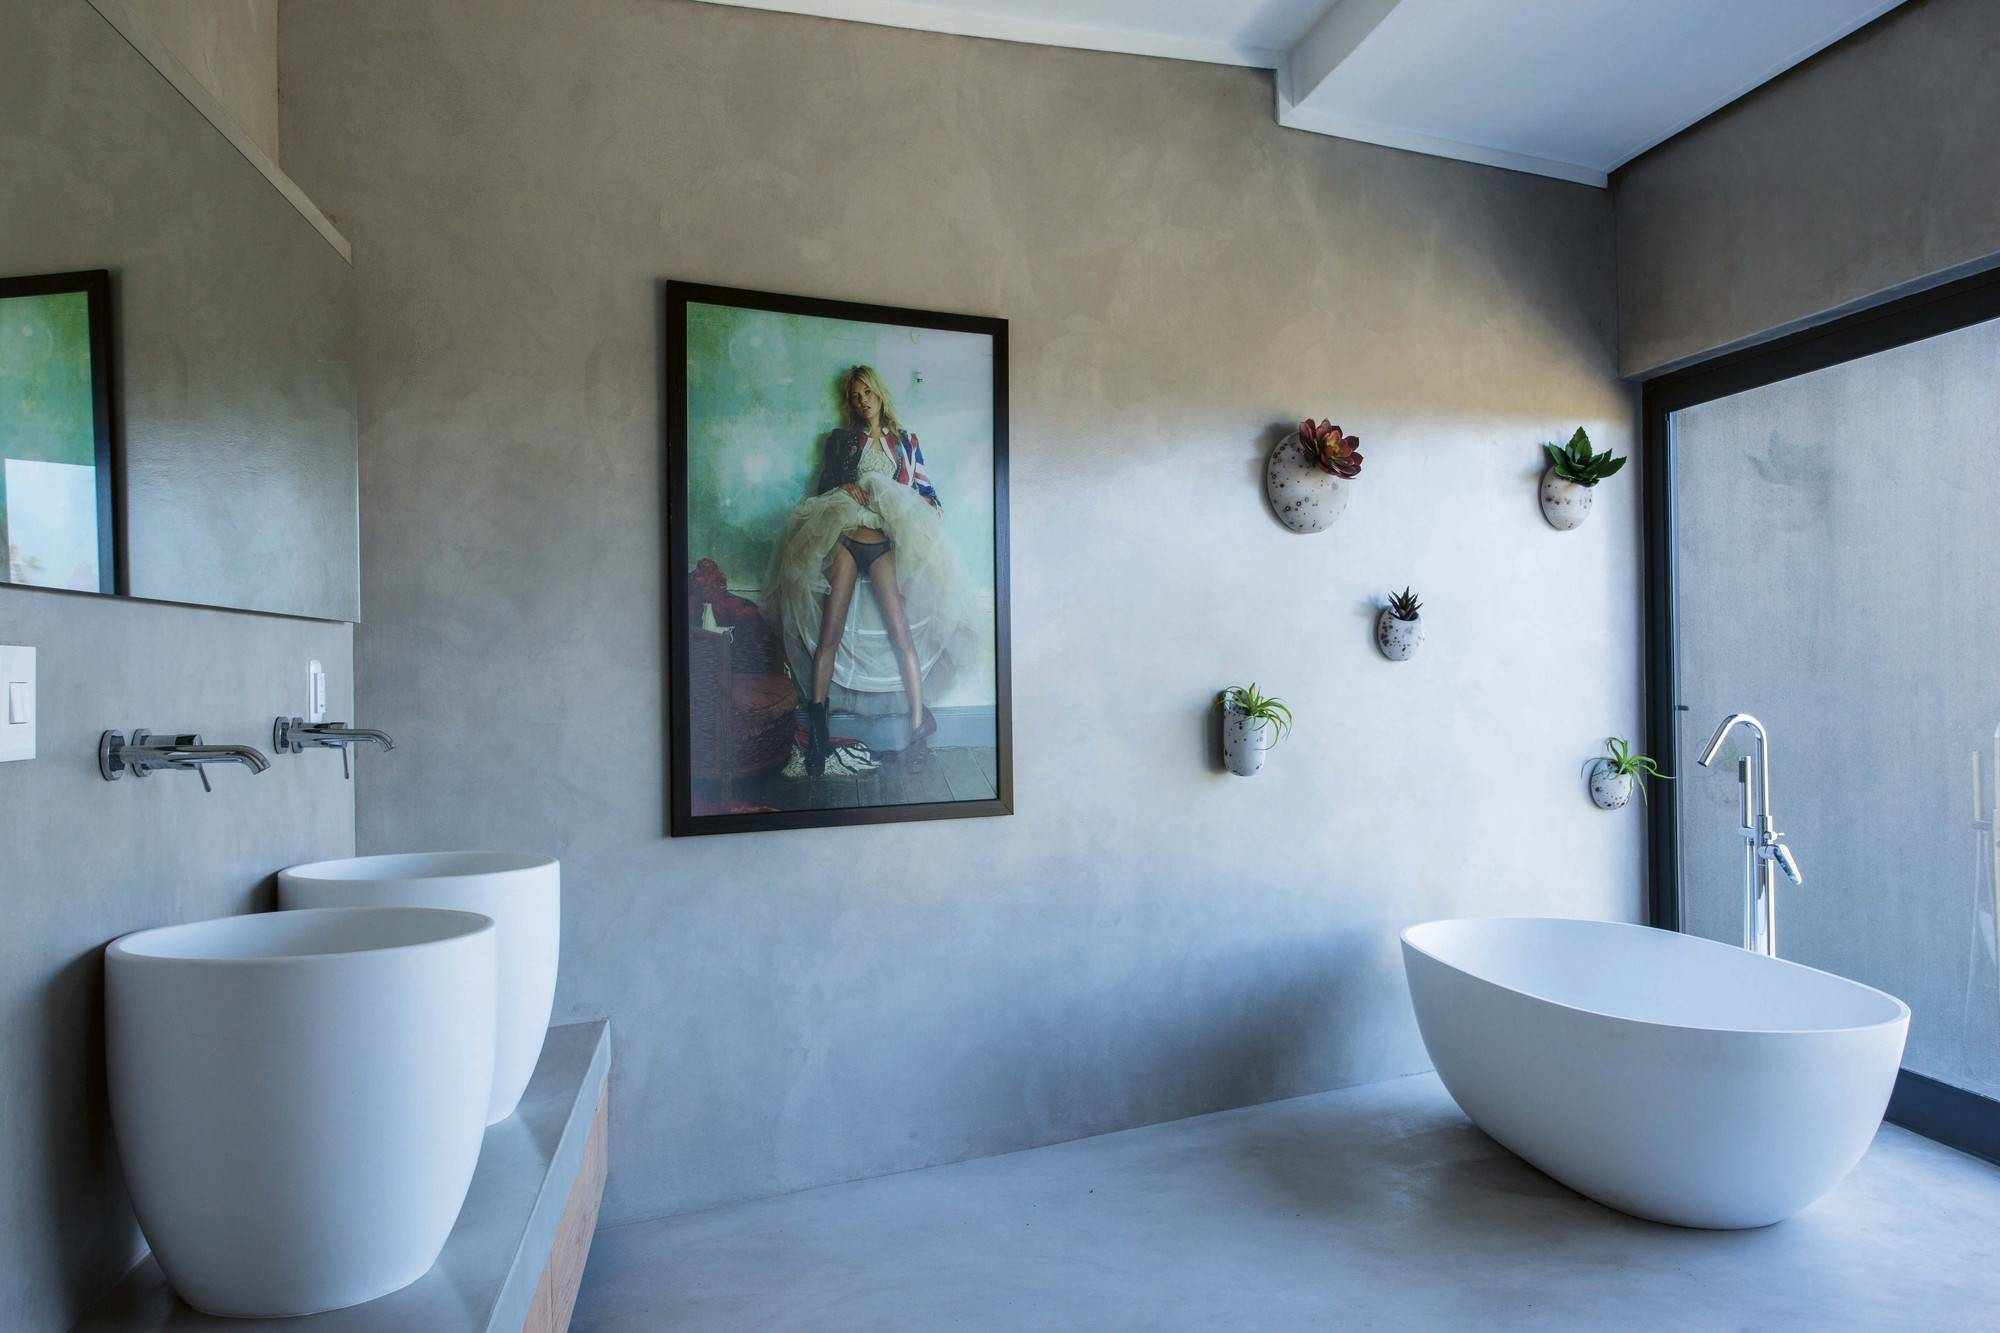 Wall-mounted plants inside the bathroom with polished, spa-inspired look